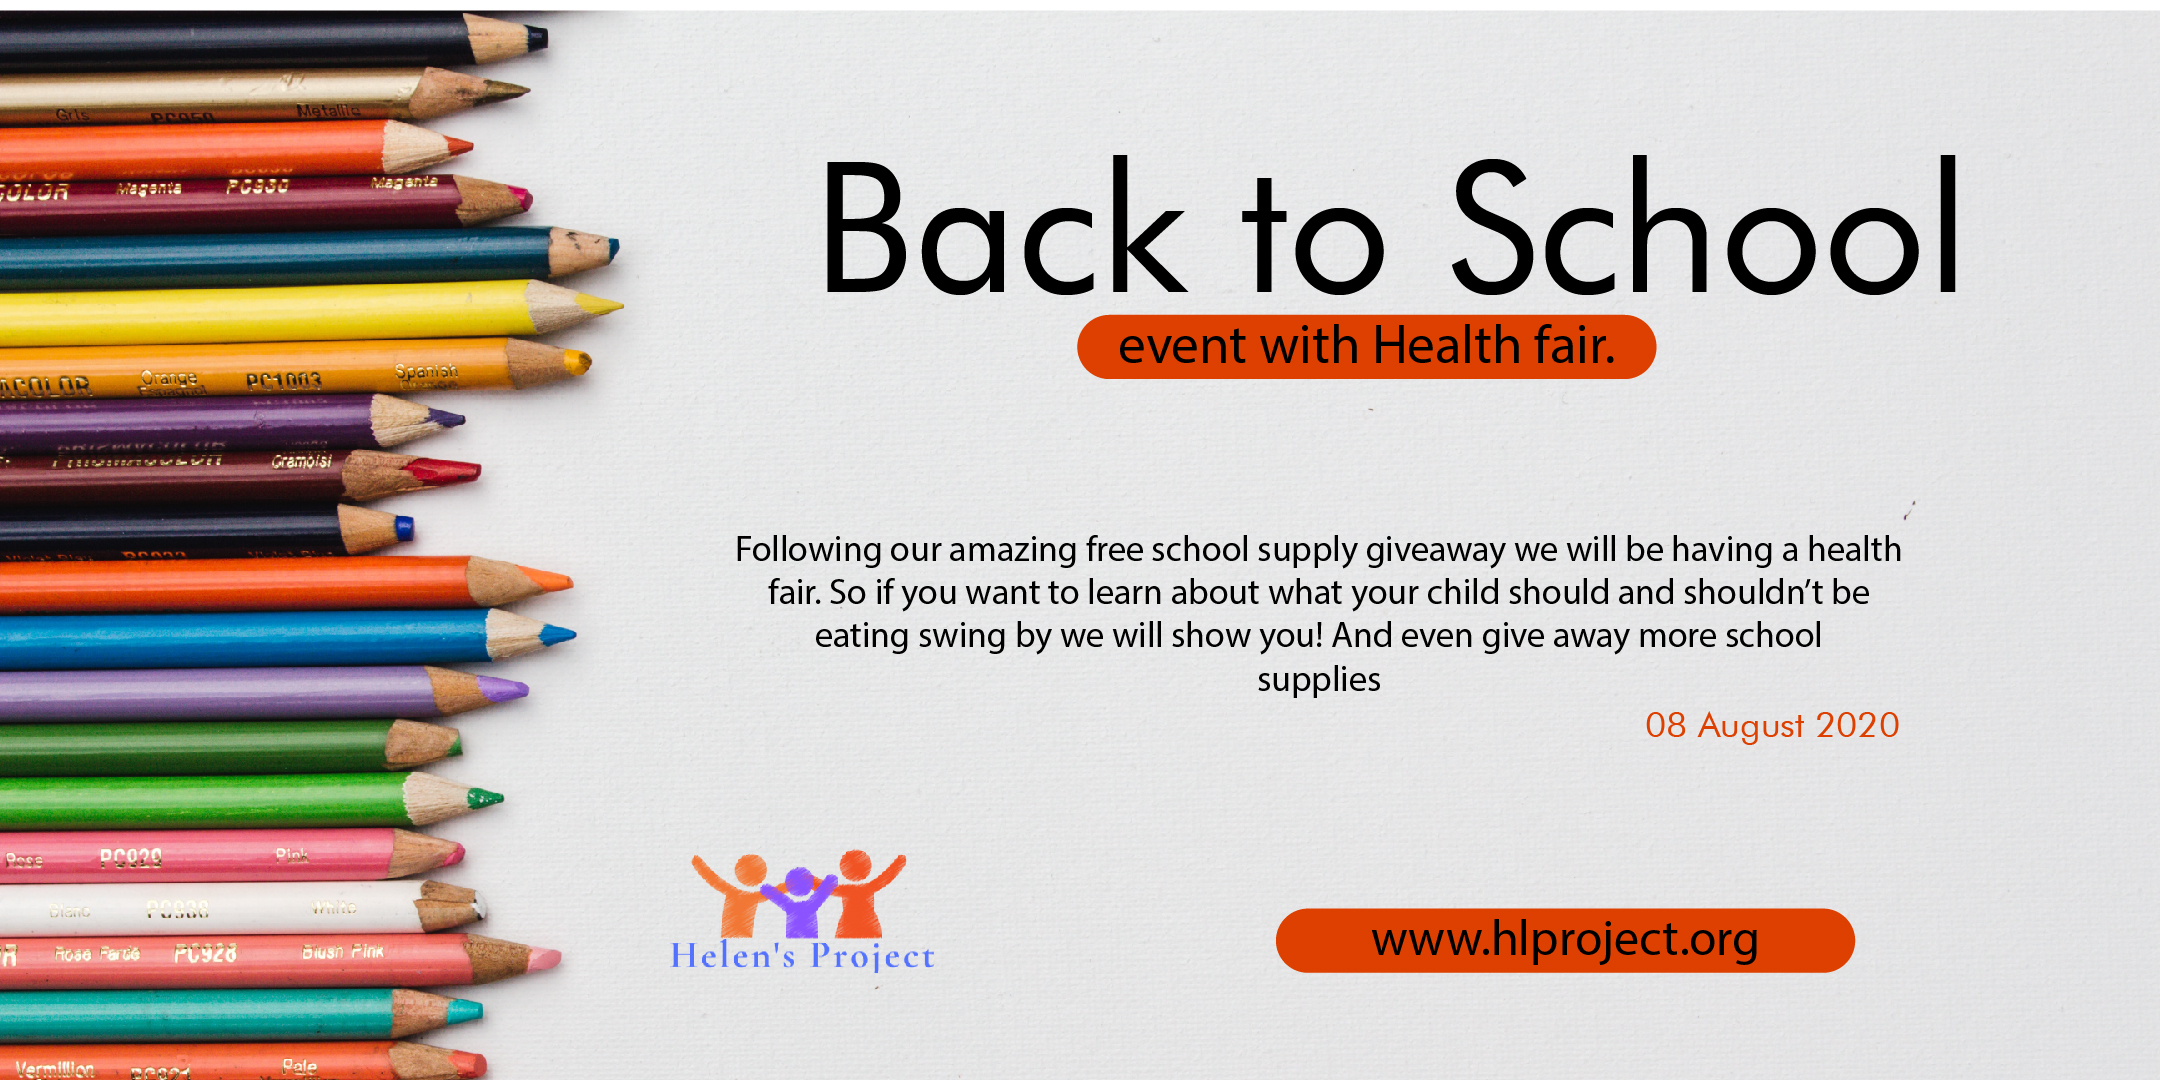 Back to School event with Health Fair